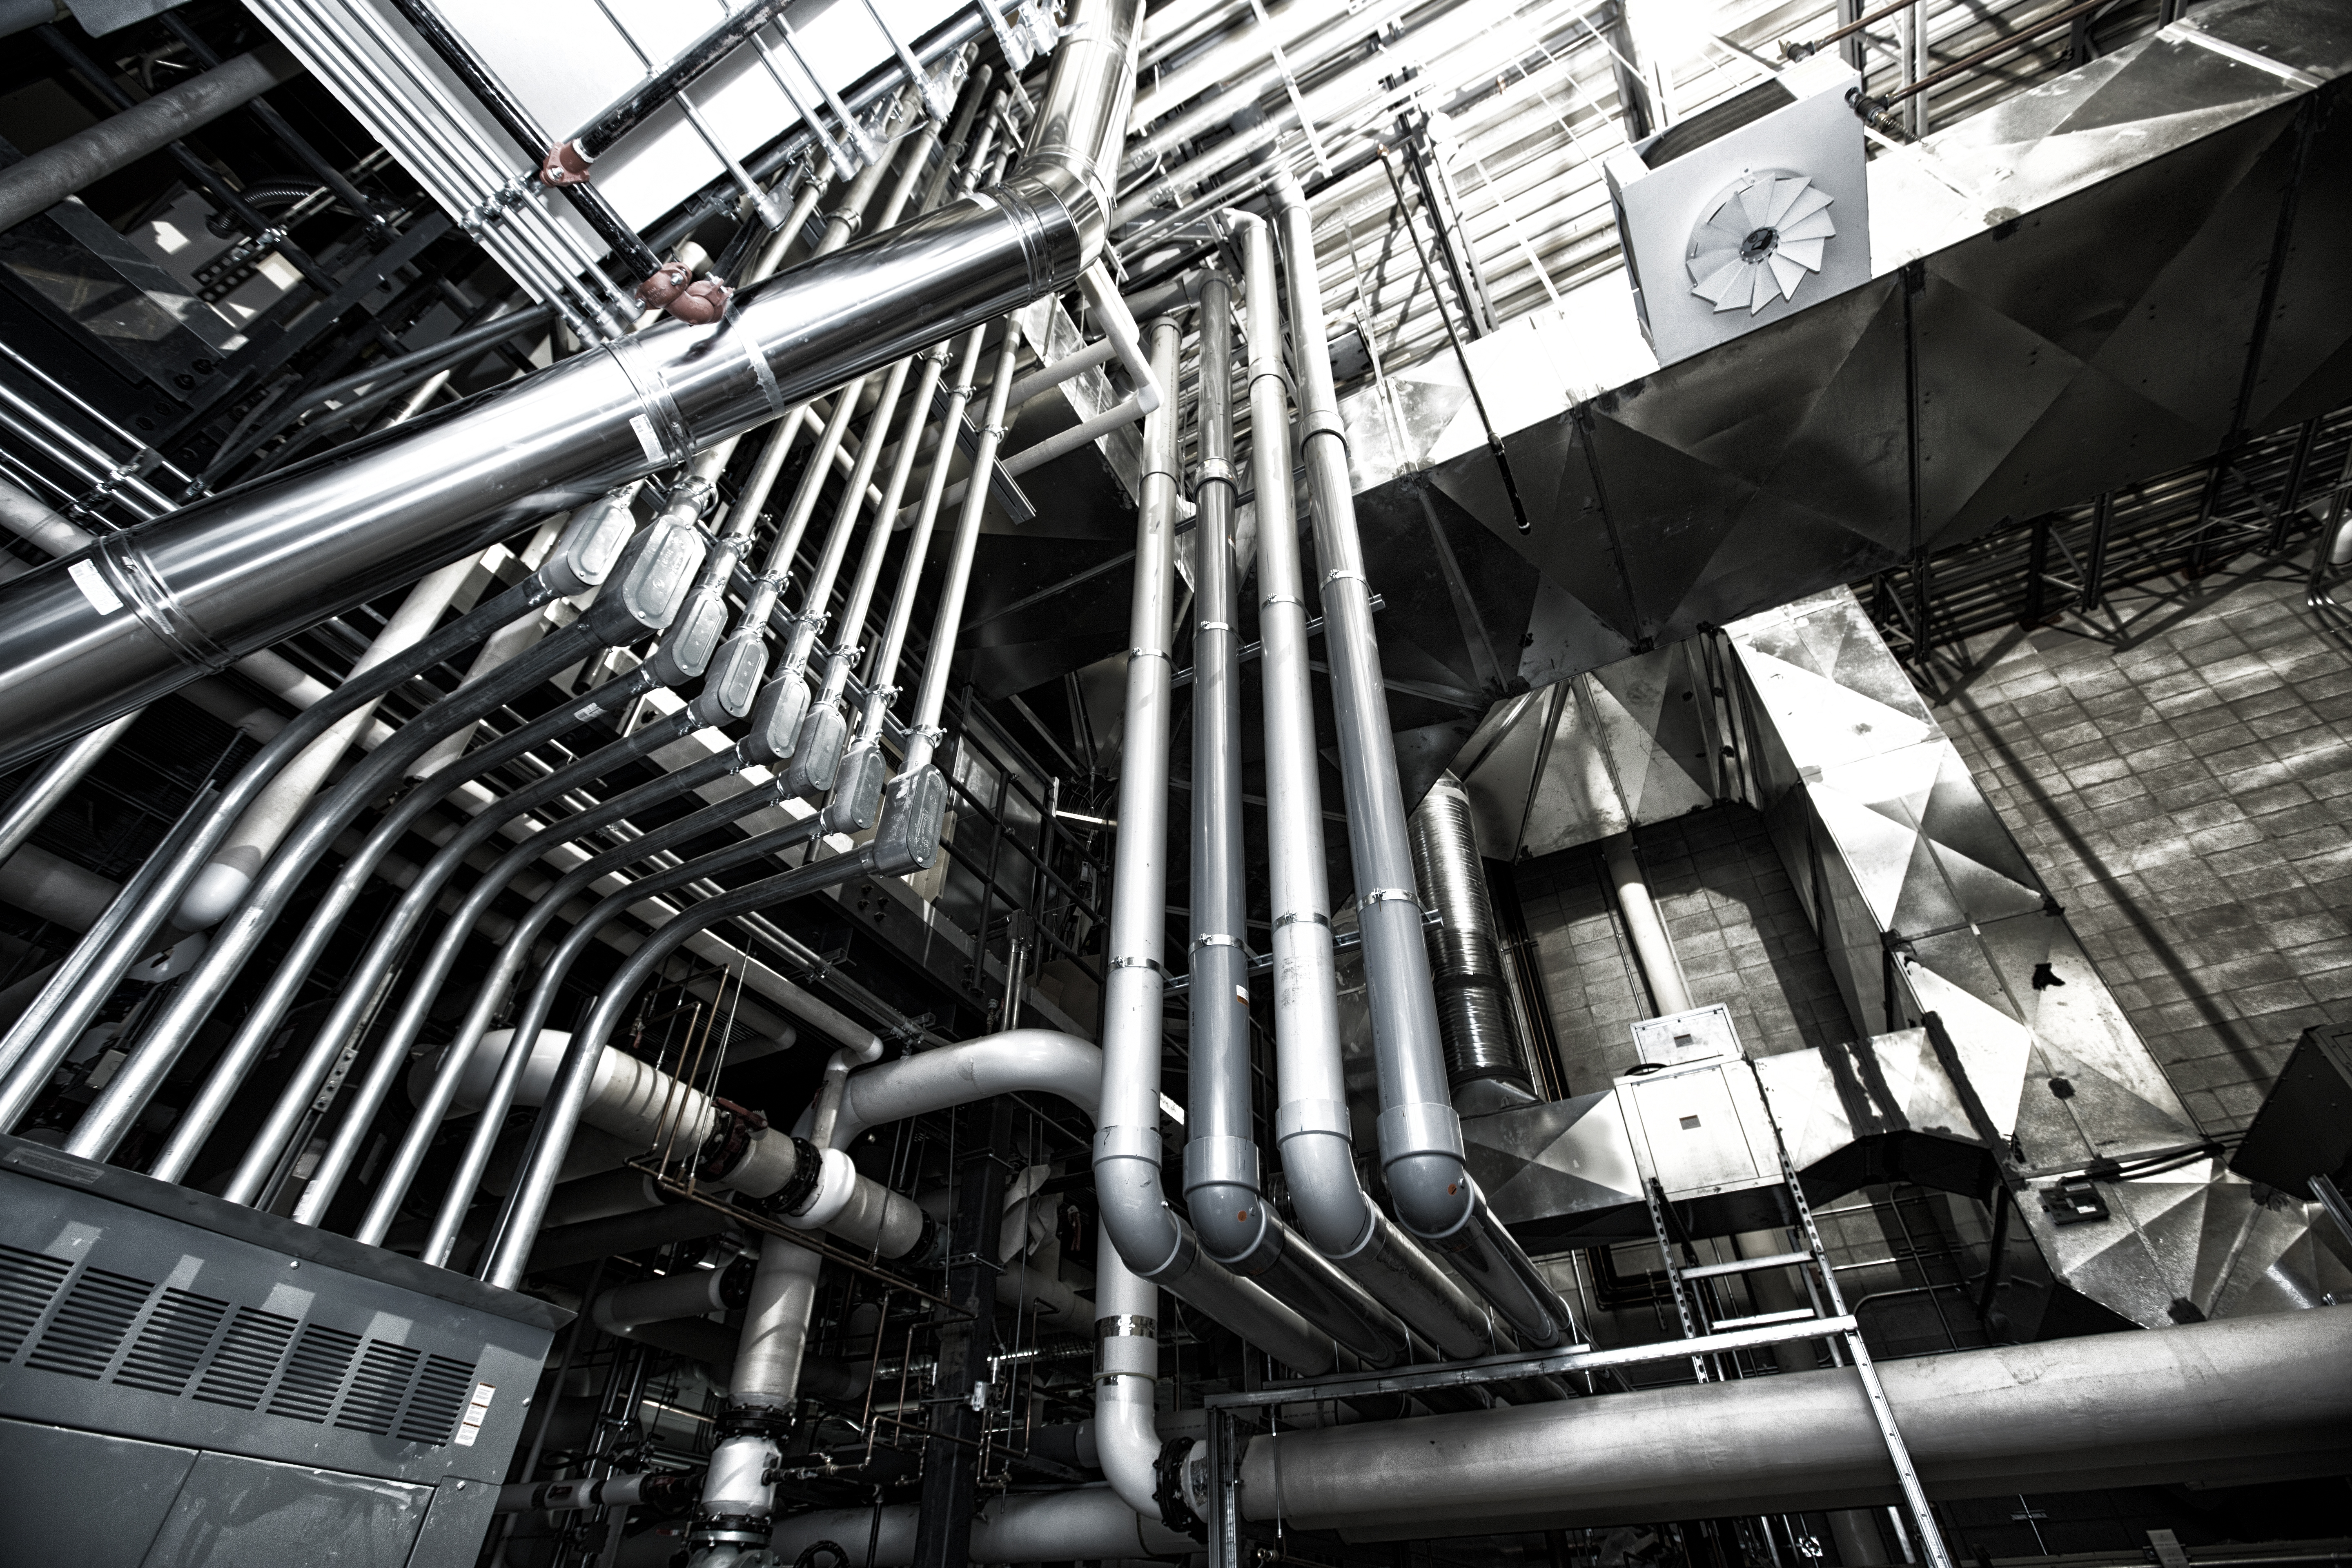 Close up of pipes in a large boiler room